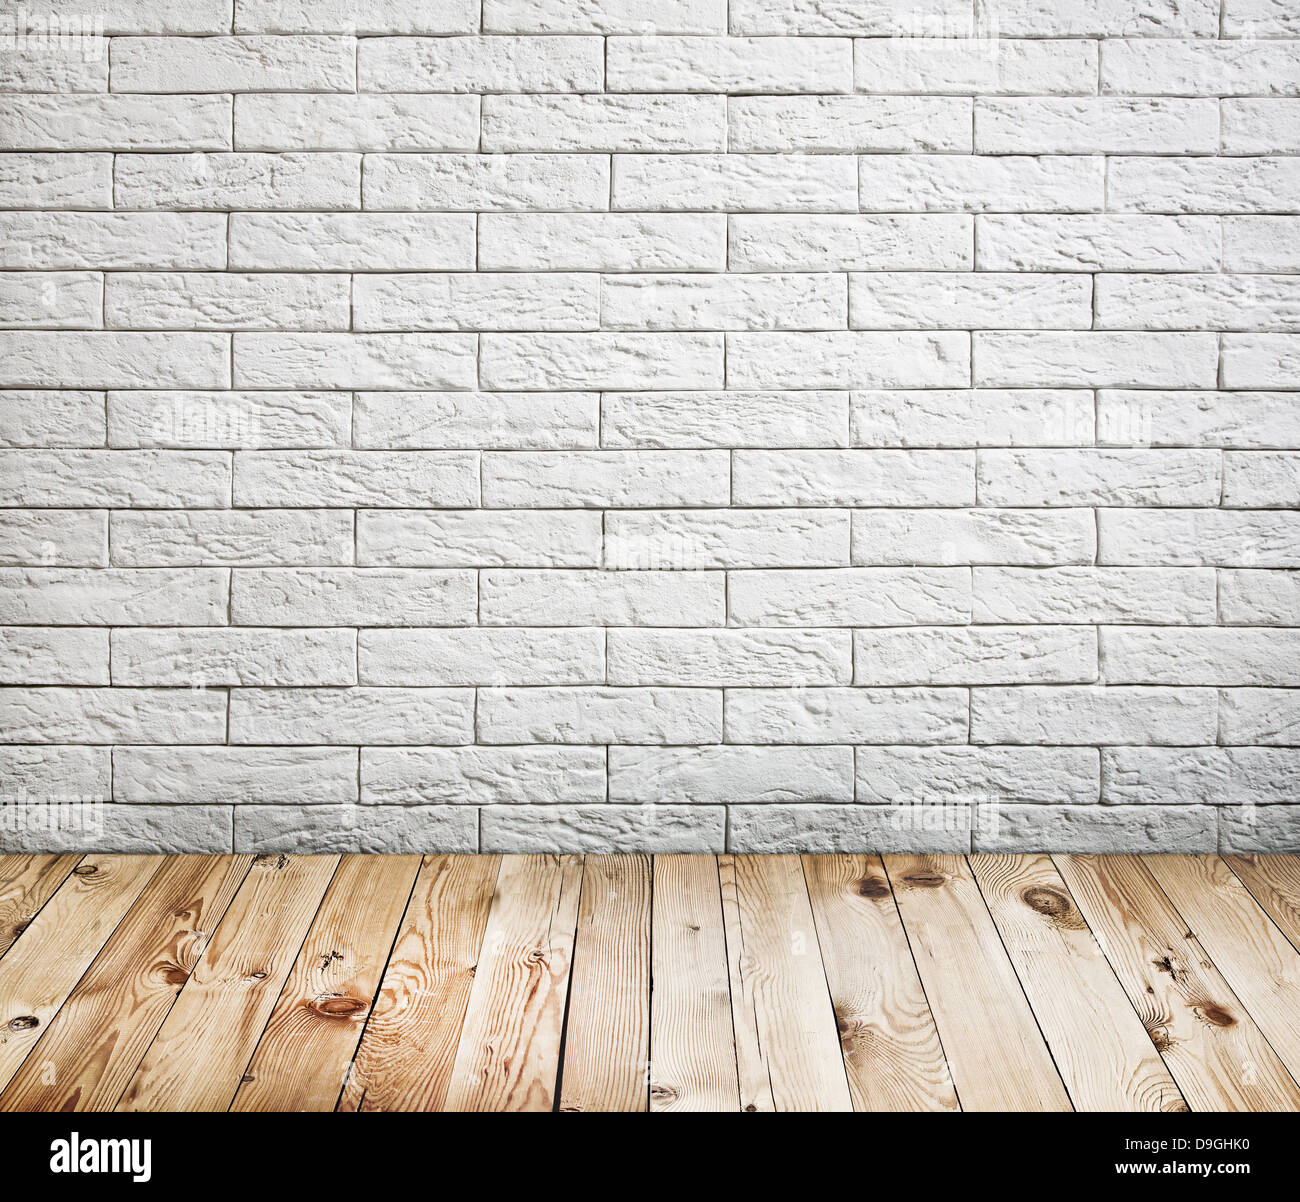 White Brick Wall Wooden Floor High Resolution Stock Photography And Images Alamy